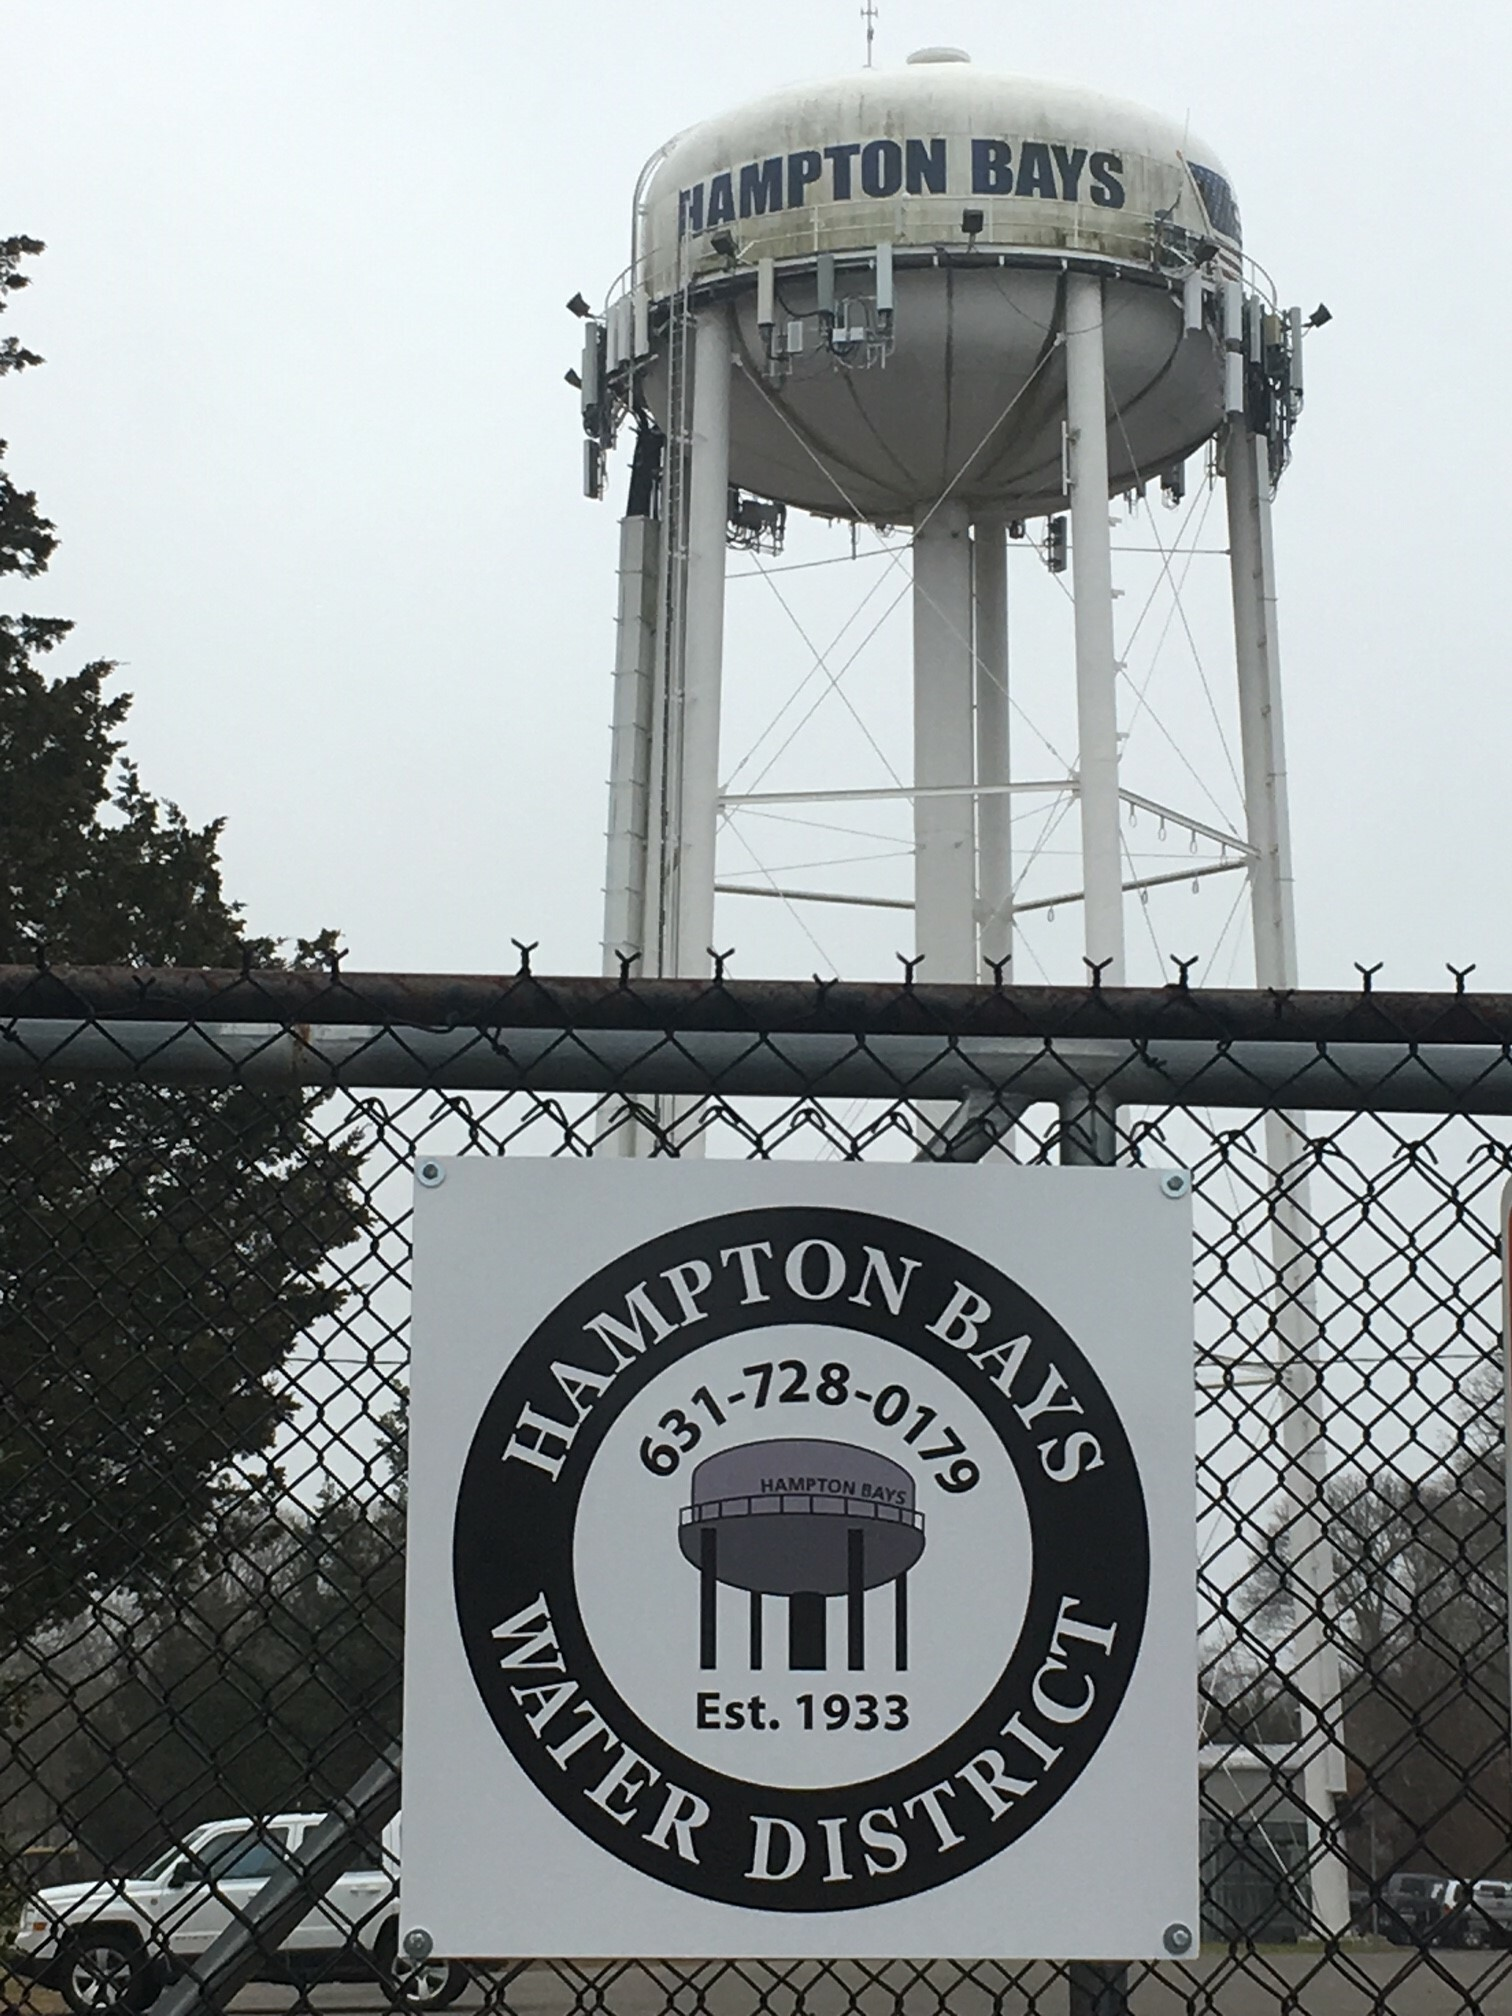 Southampton Town Board members are poised to eye a comprehensive analysis of the Hampton Bays Water District. KITTY MERRILL